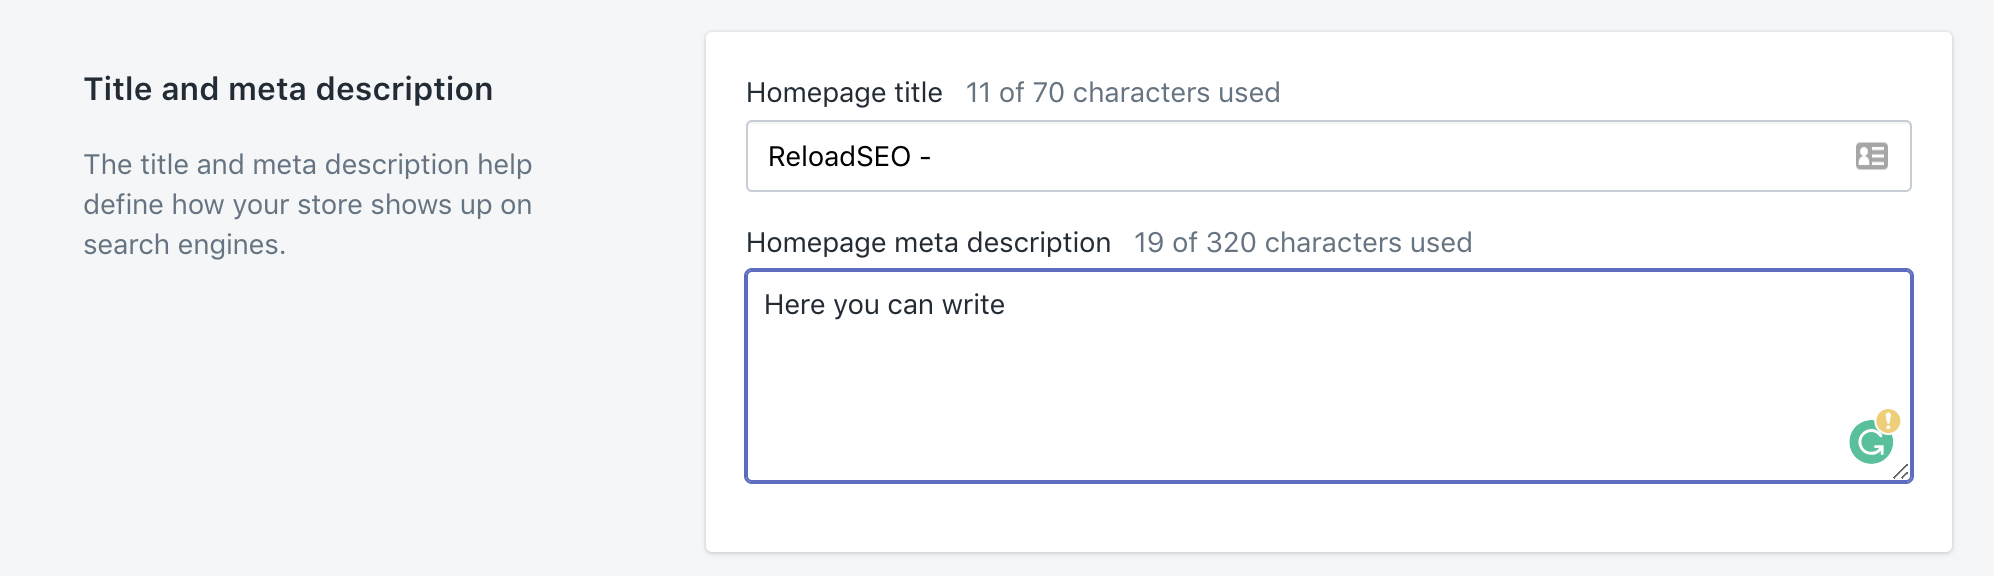 Editing the meta description of your home page